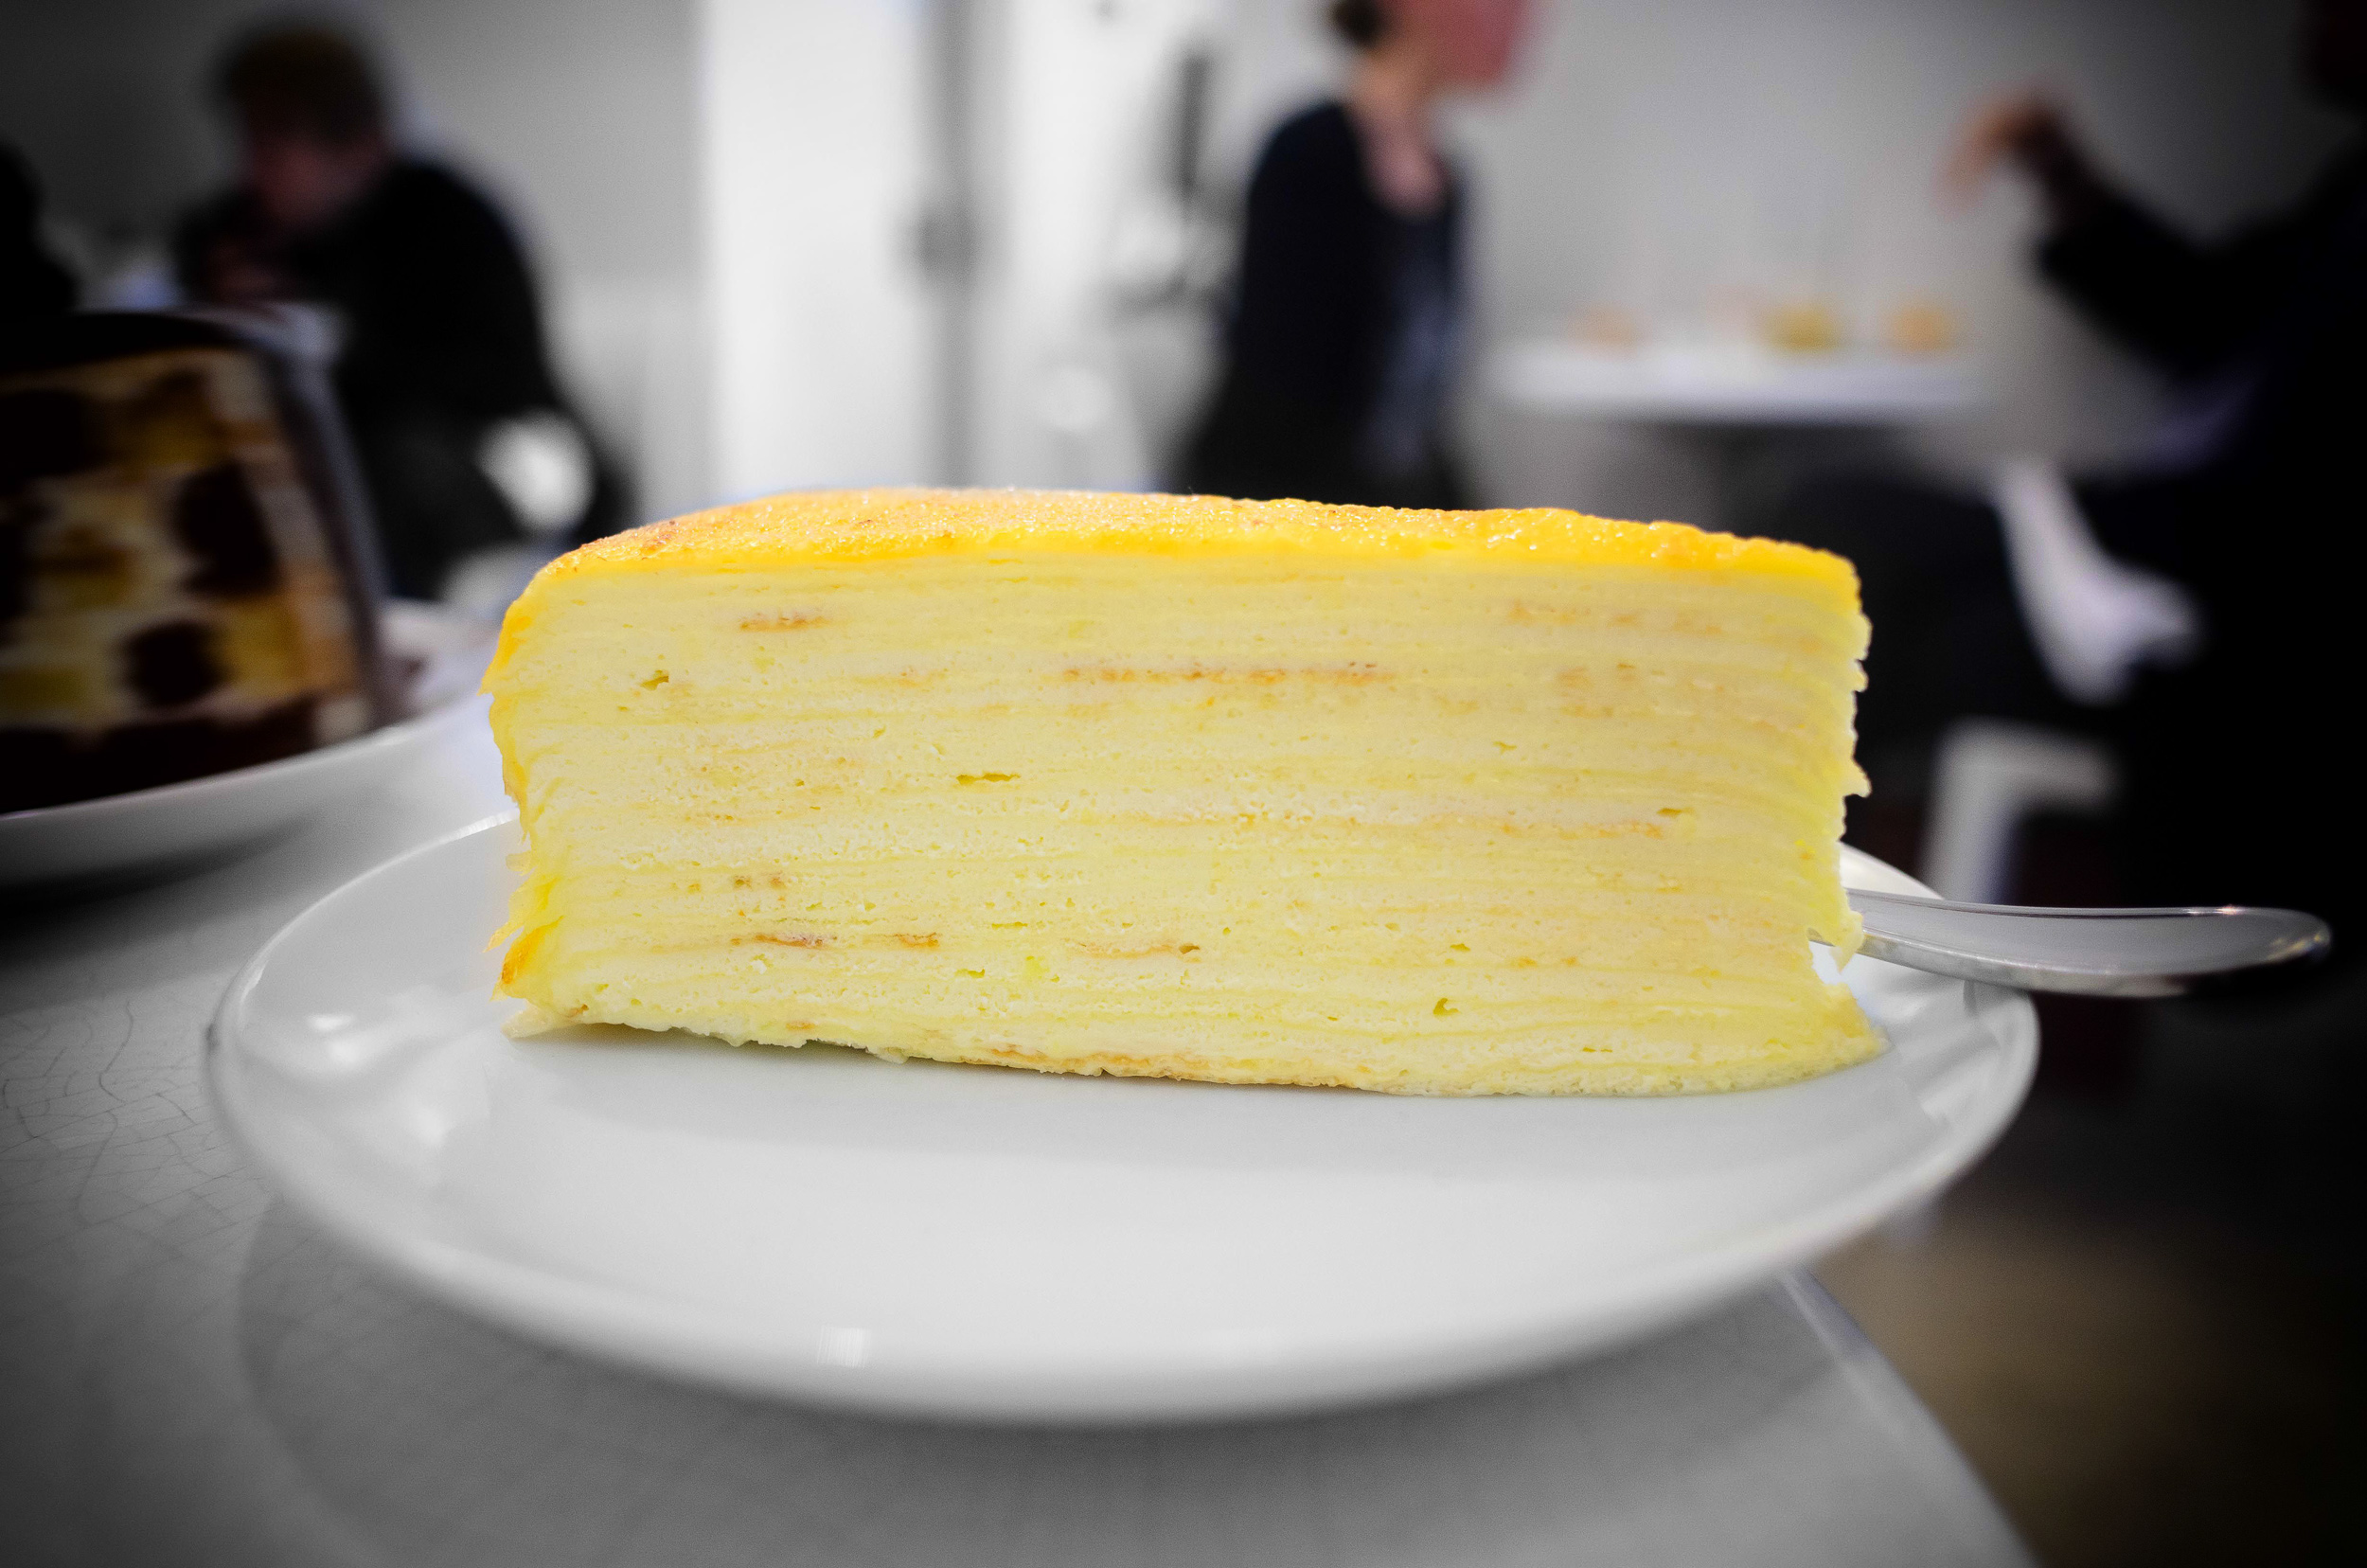 Mille crêpe (over twenty paper-thin crêpes layered with pastry